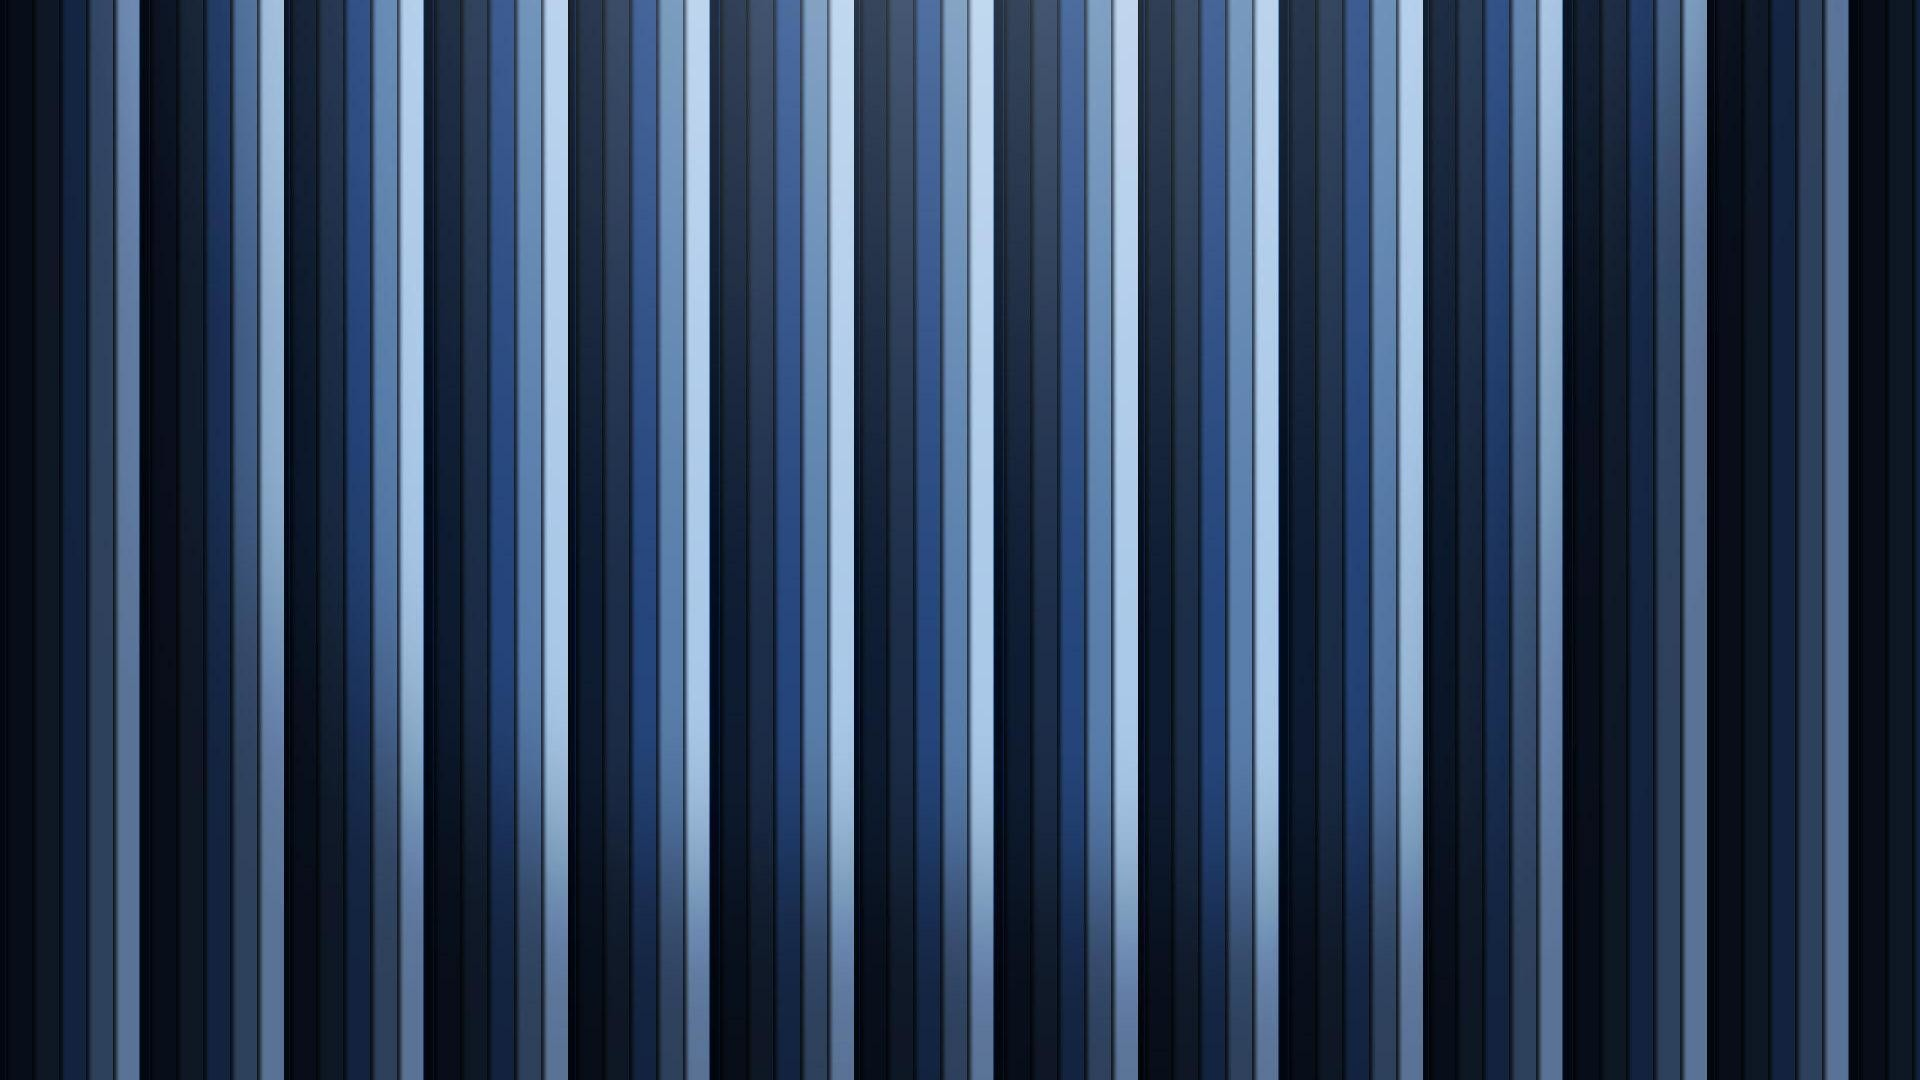 | Black and Blue Striped Wallpaper